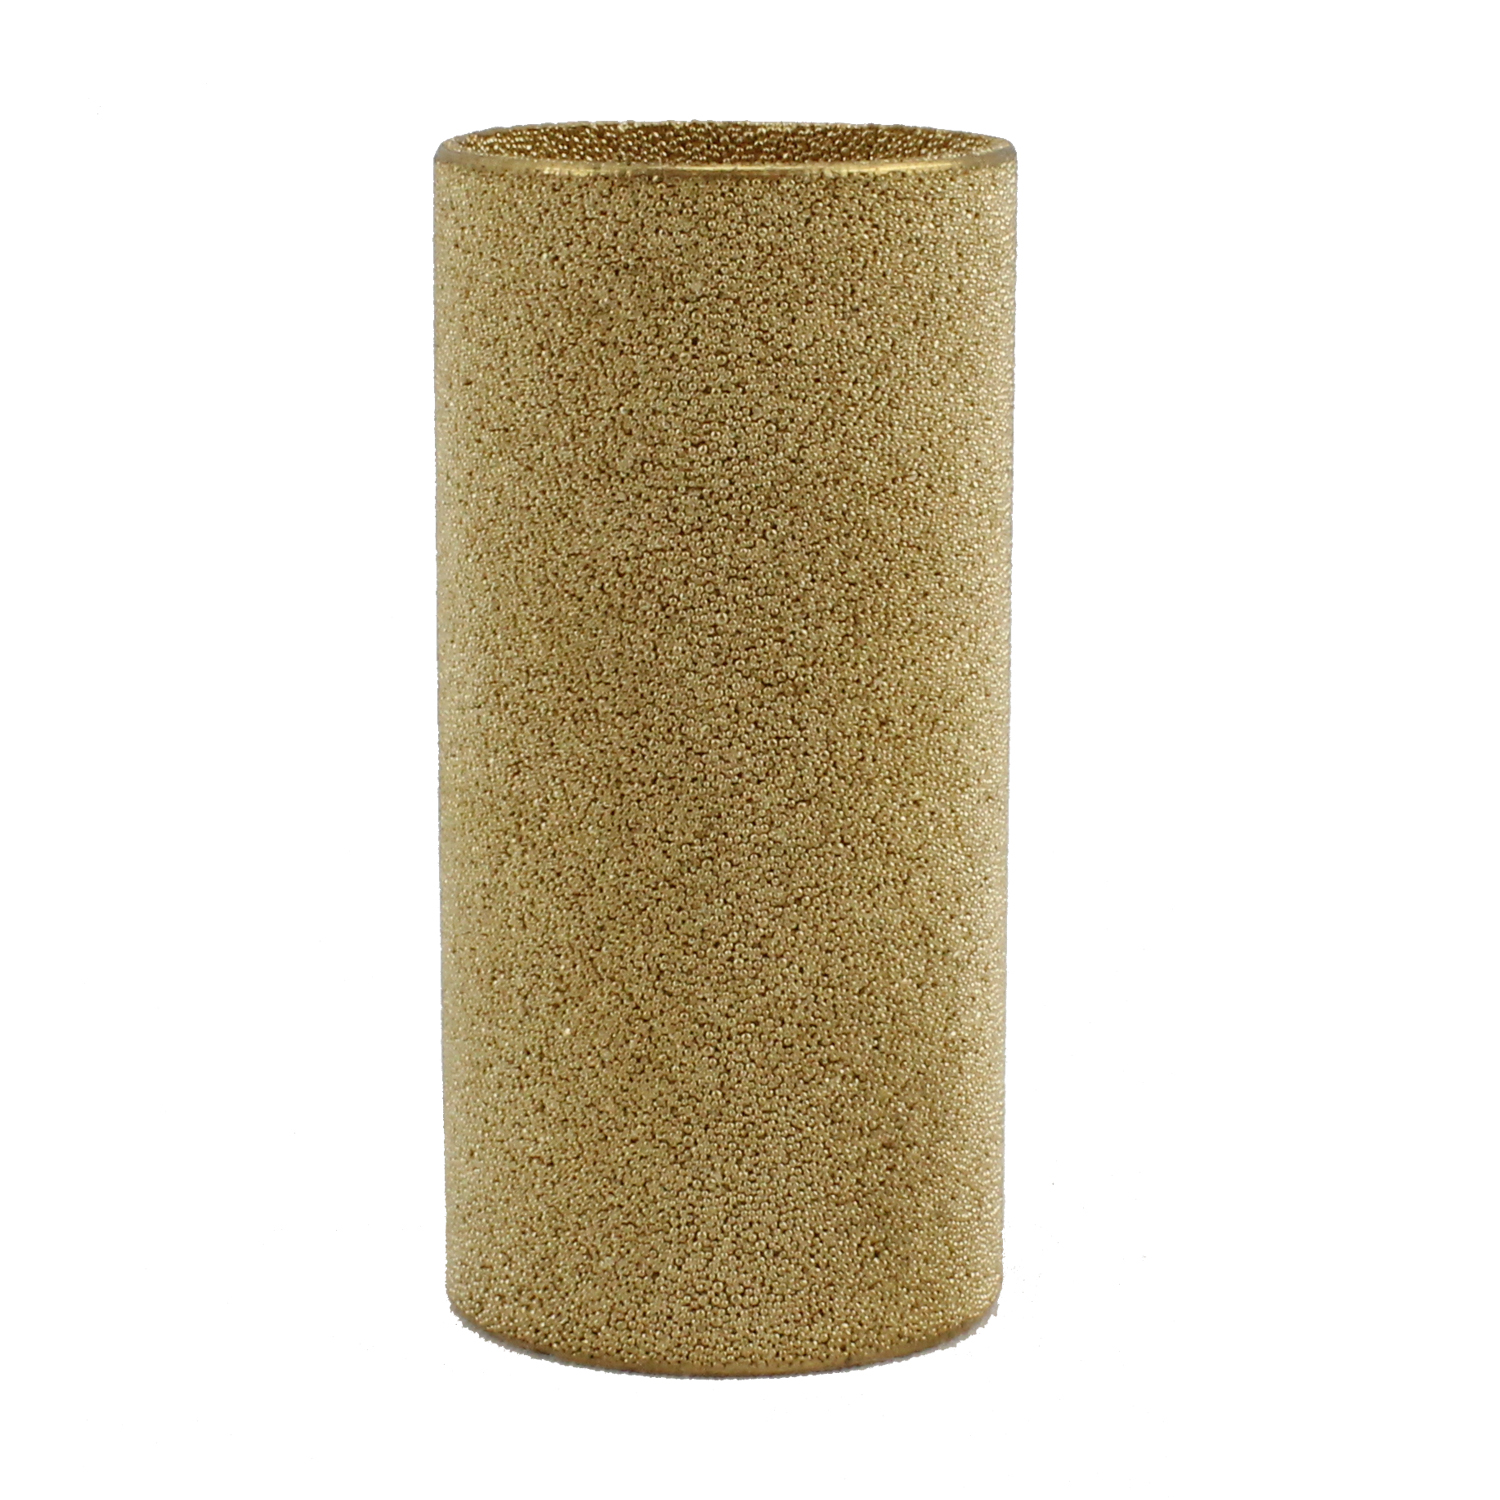 "Milton S-1118-1RP Bronze Filter Element for 1/4"", 3/8"" and 1/2"" Bowls"